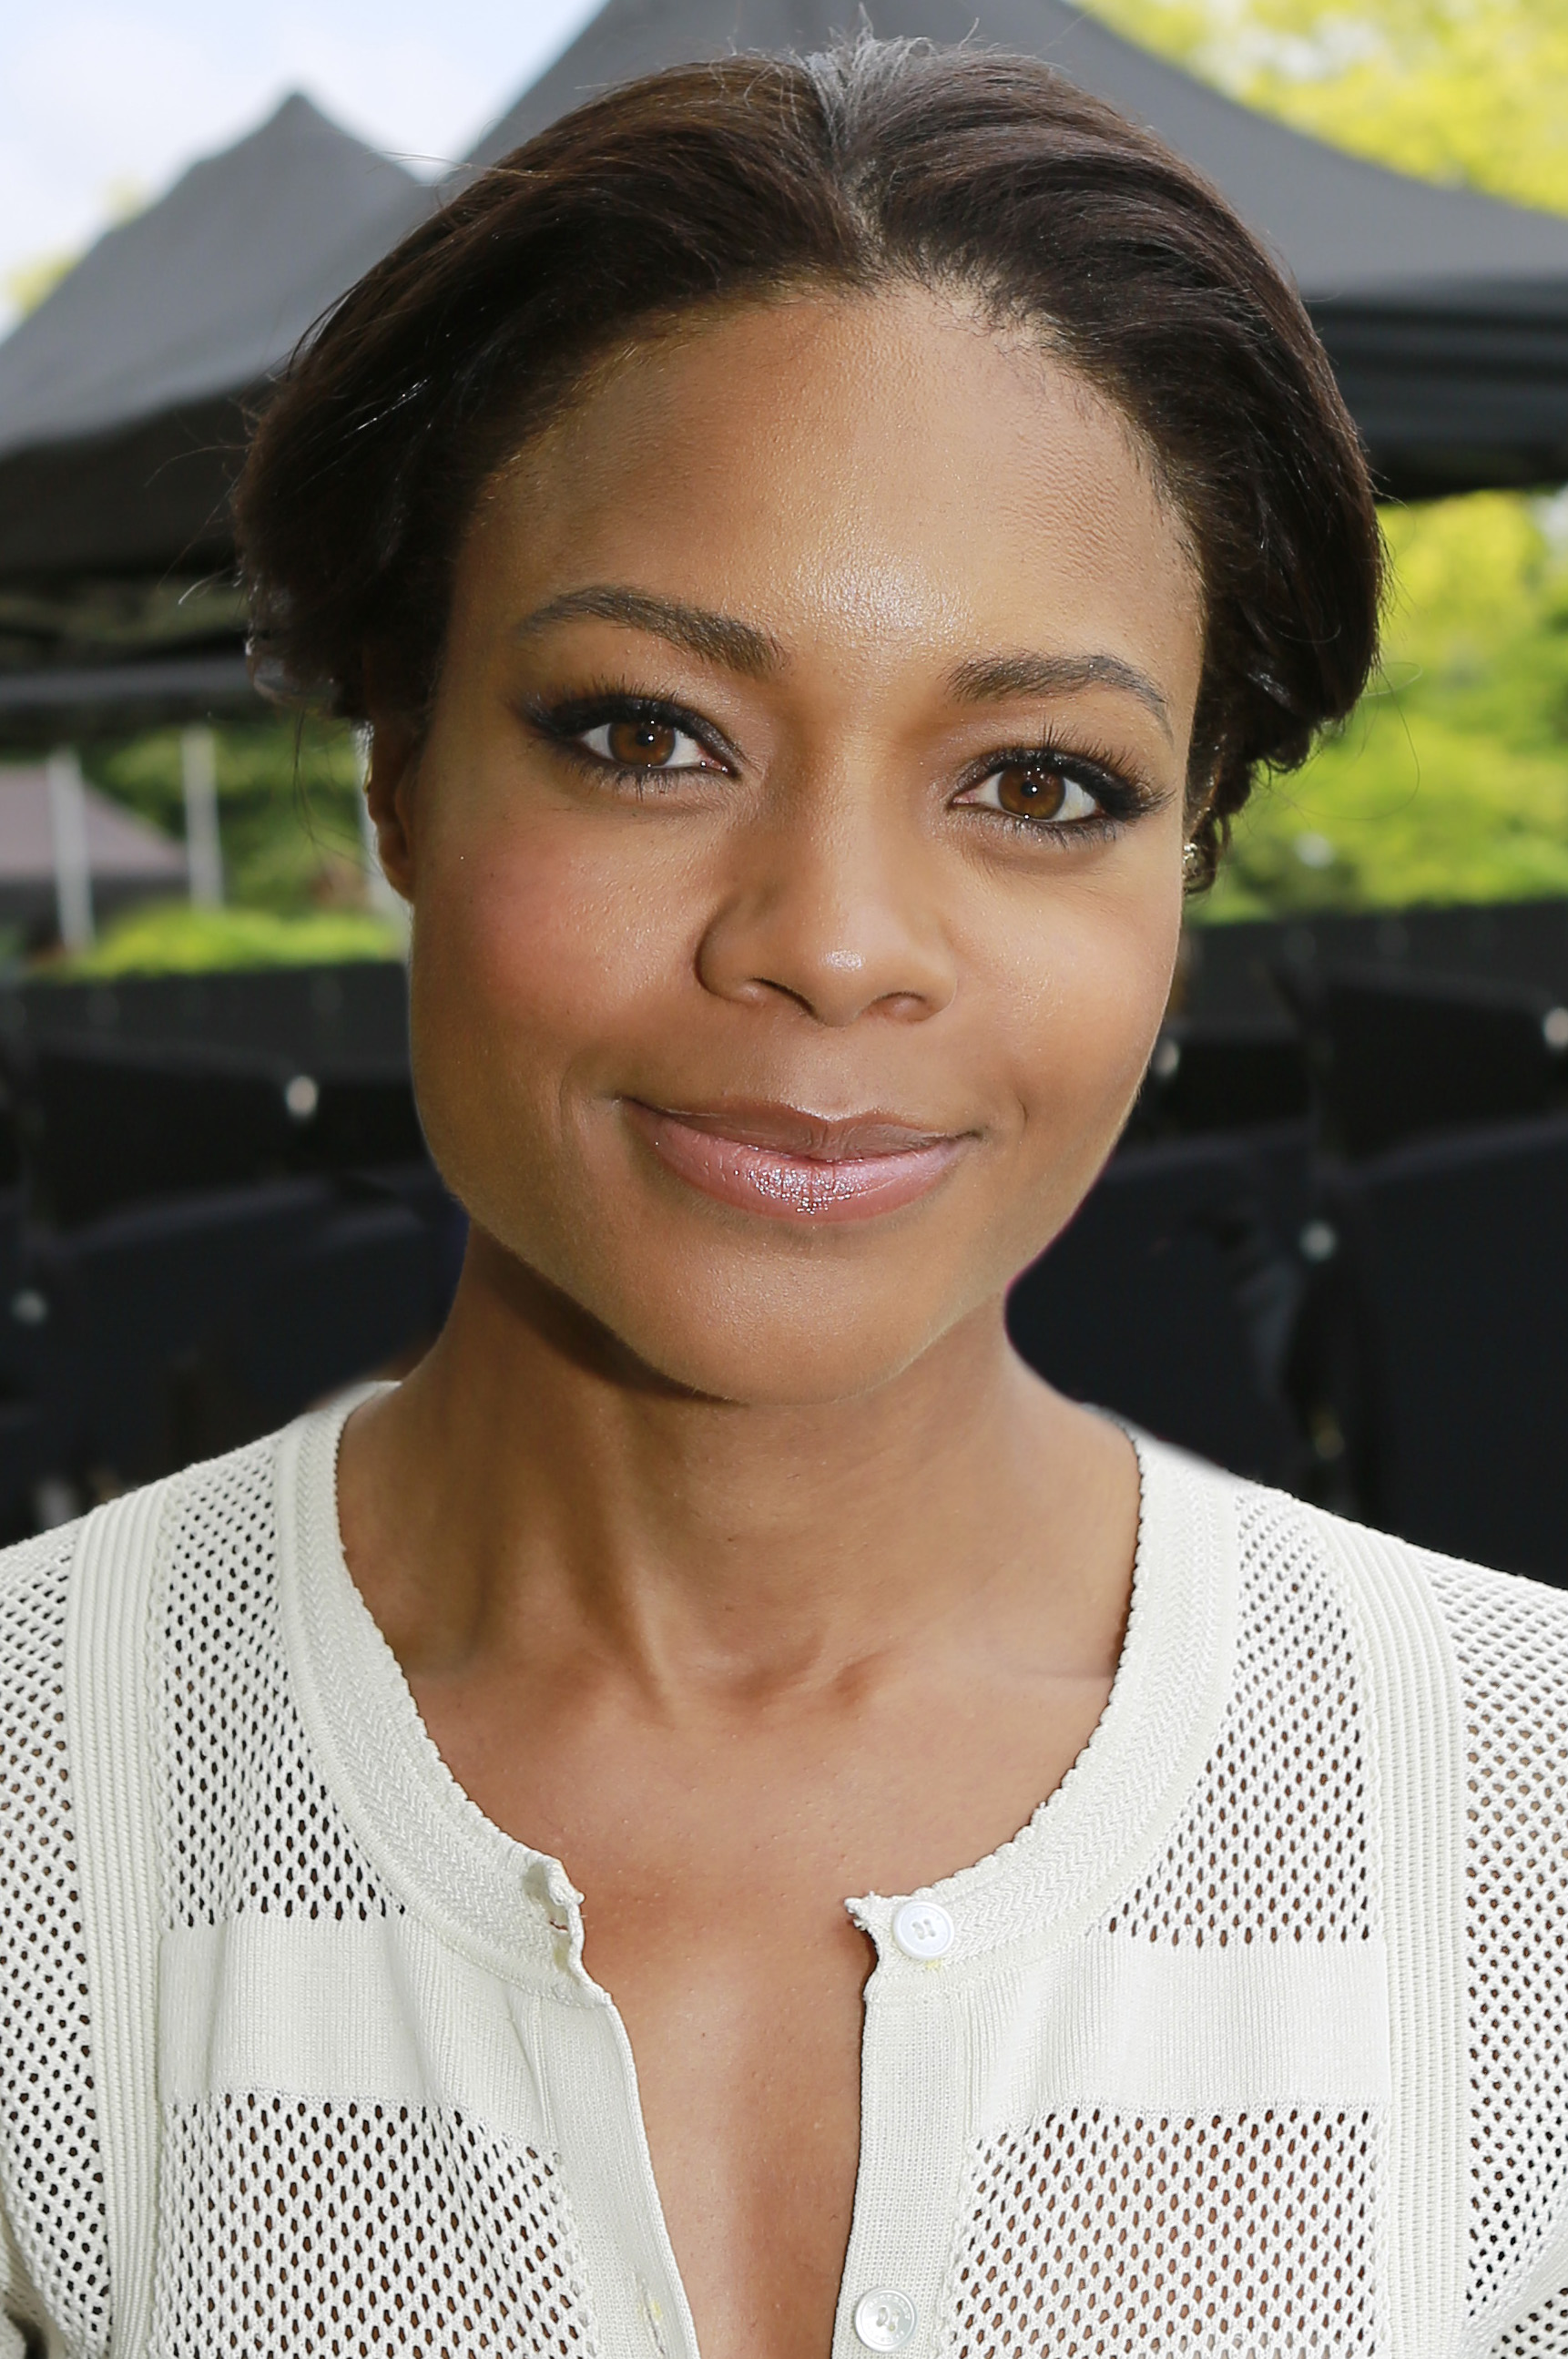 The 42-year old daughter of father (?) and mother Lisselle Kayla Naomie Harris in 2018 photo. Naomie Harris earned a  million dollar salary - leaving the net worth at 7 million in 2018